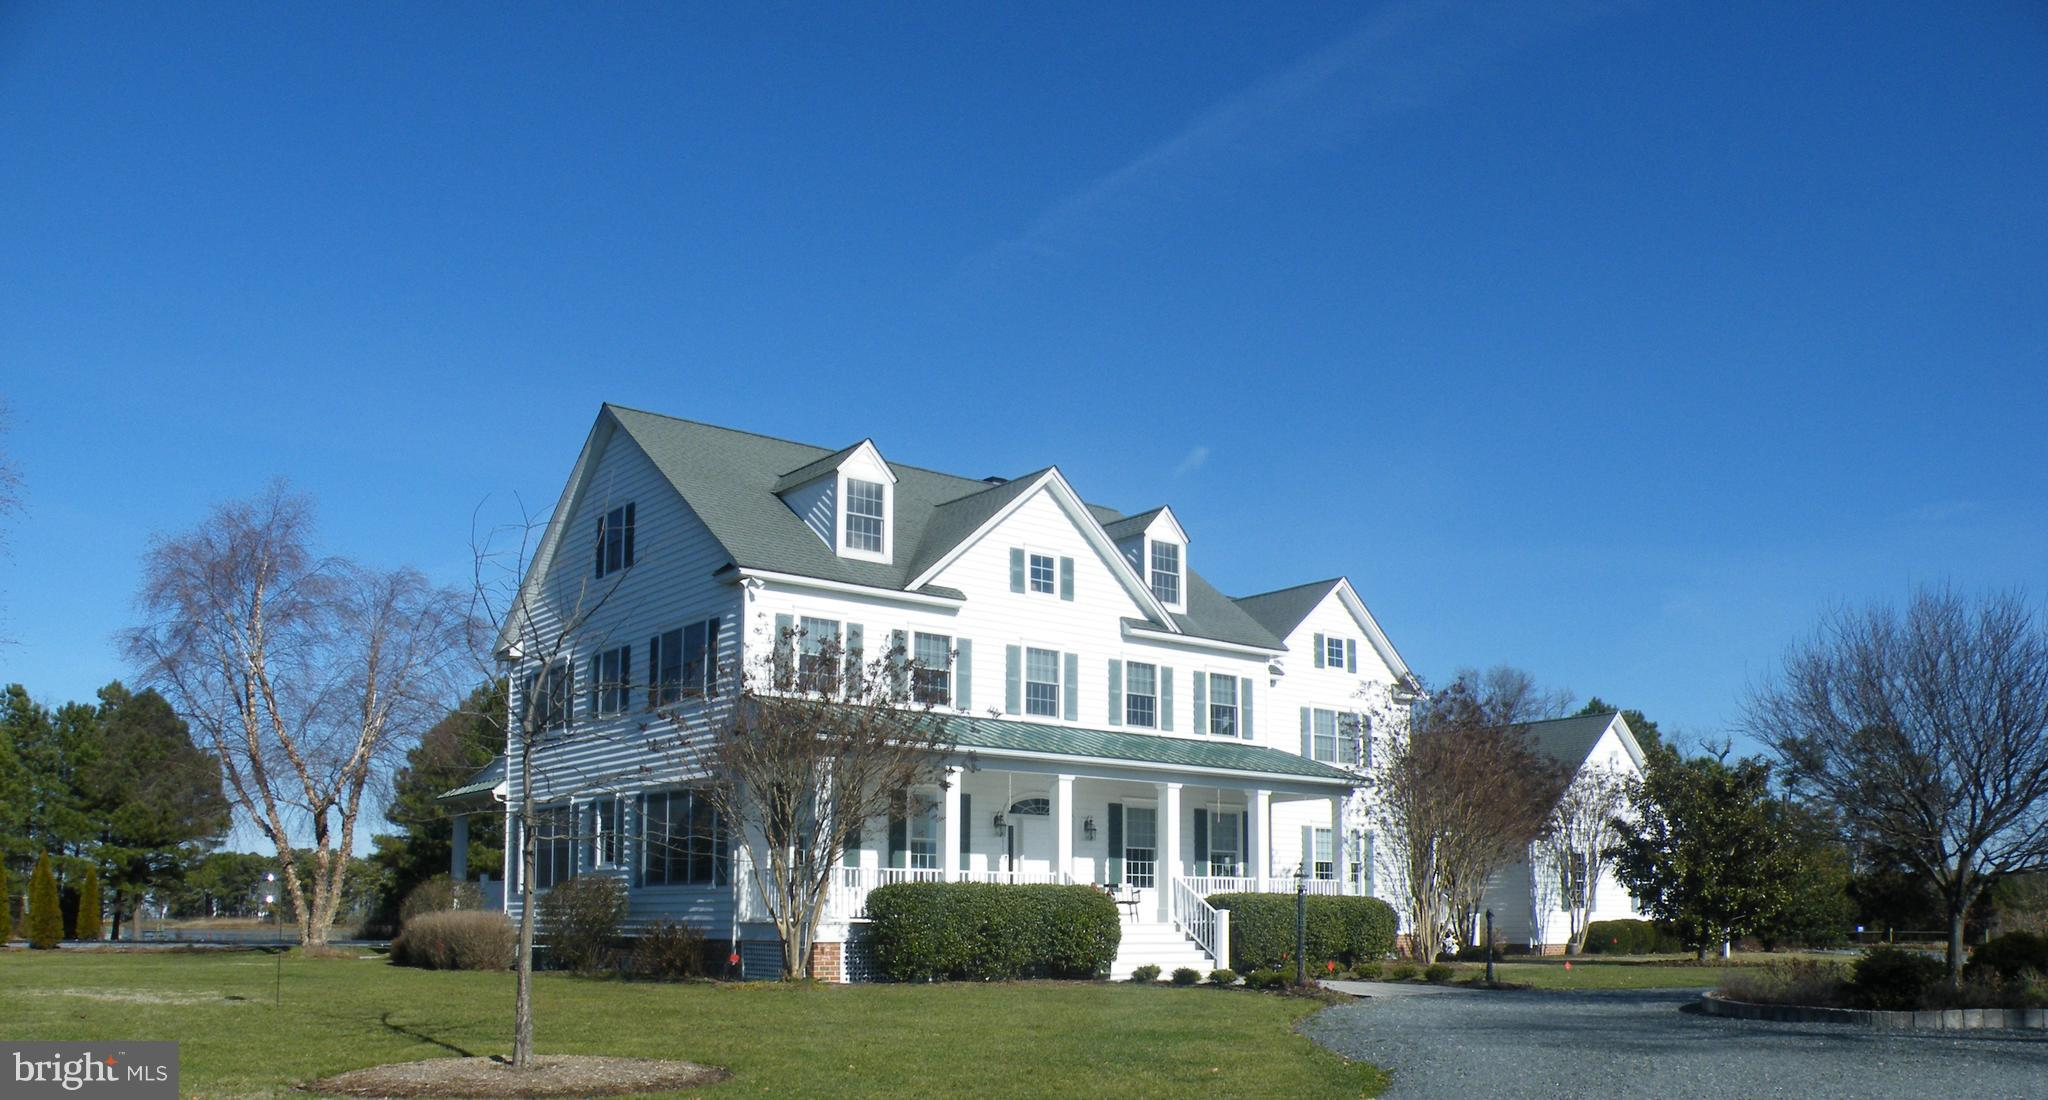 812 COOK POINT ROAD, CAMBRIDGE, MD 21613